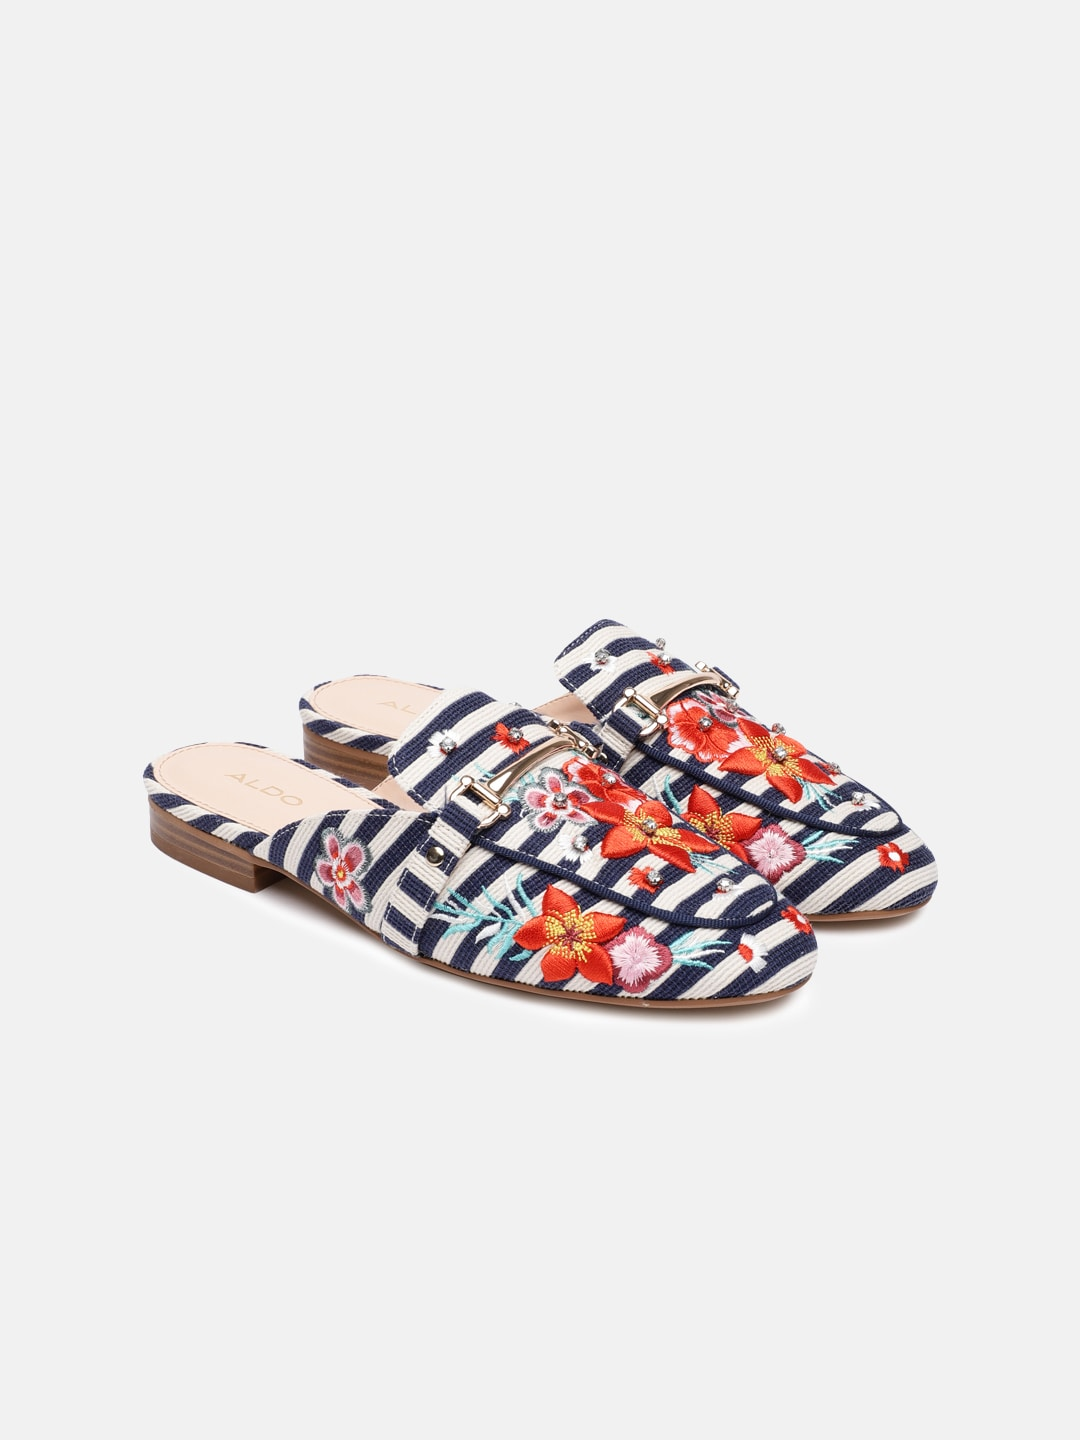 41b956658d6 ALDO Shoes - Buy Shoes from ALDO Online Store in India